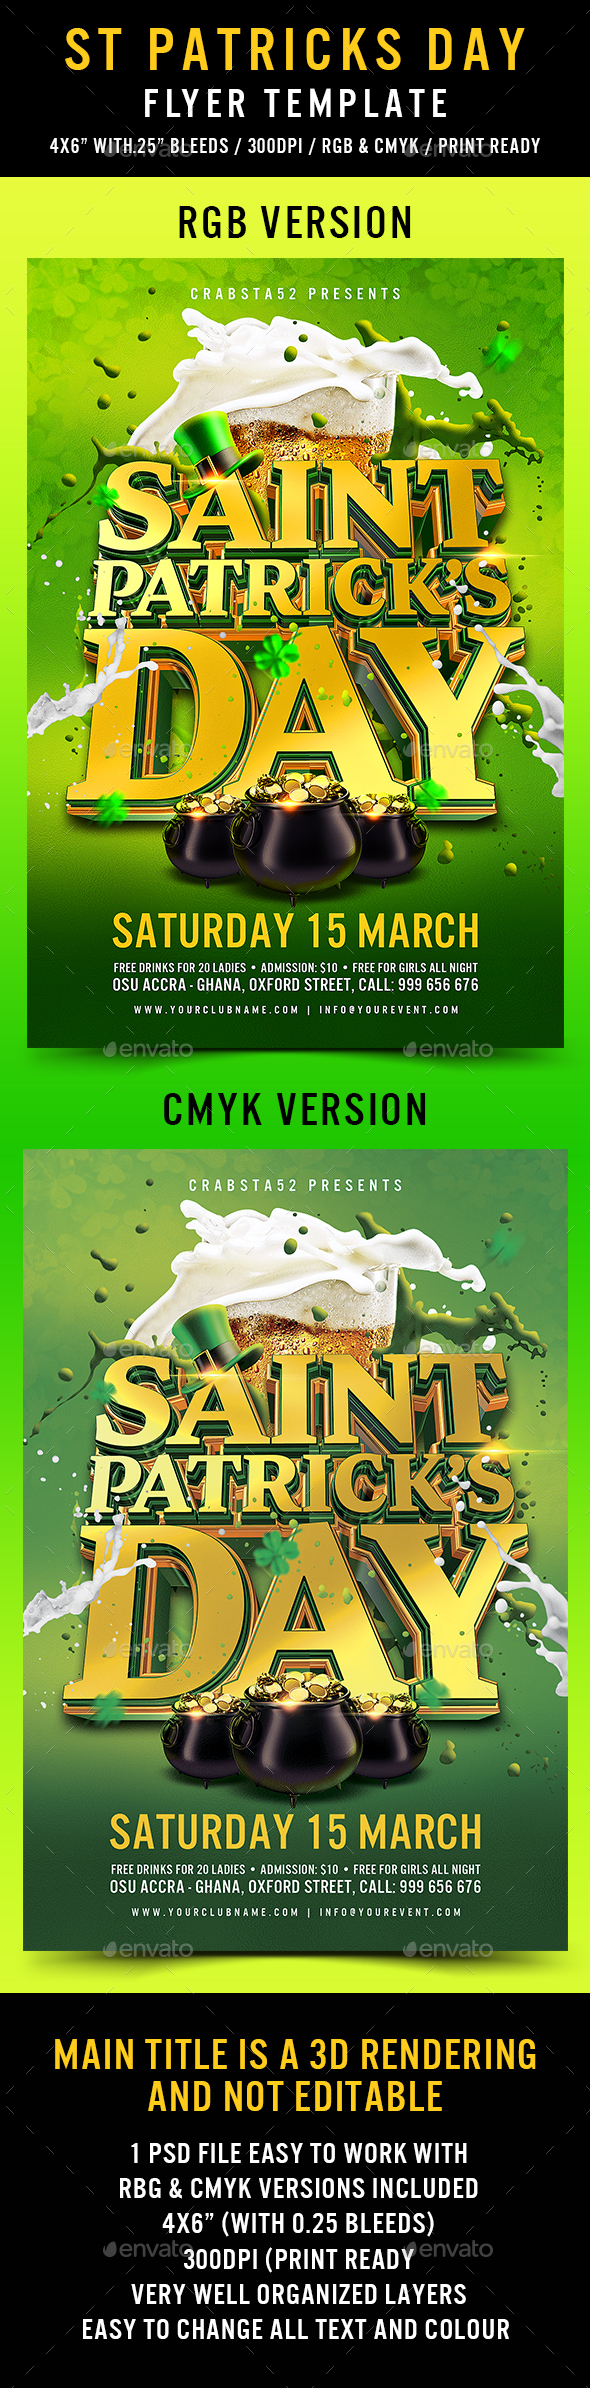 St Patricks Day Flyer Template - Events Flyers